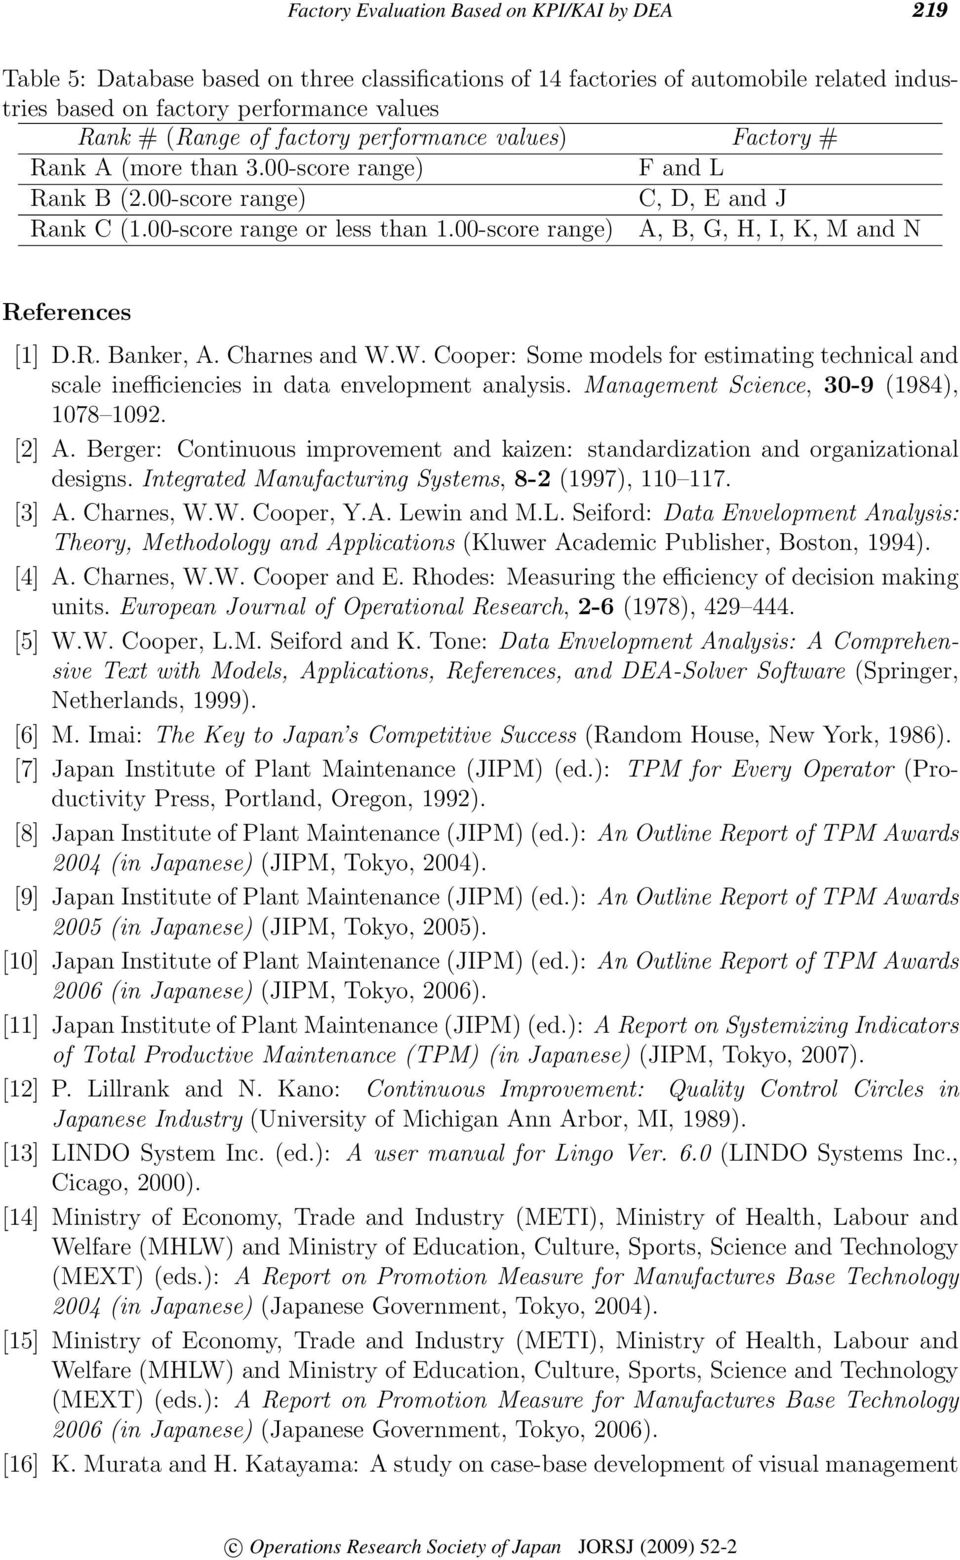 00-score range) A, B, G, H, I, K, M and N References [1] D.R. Banker, A. Charnes and W.W. Cooper: Some models for estimating technical and scale inefficiencies in data envelopment analysis.